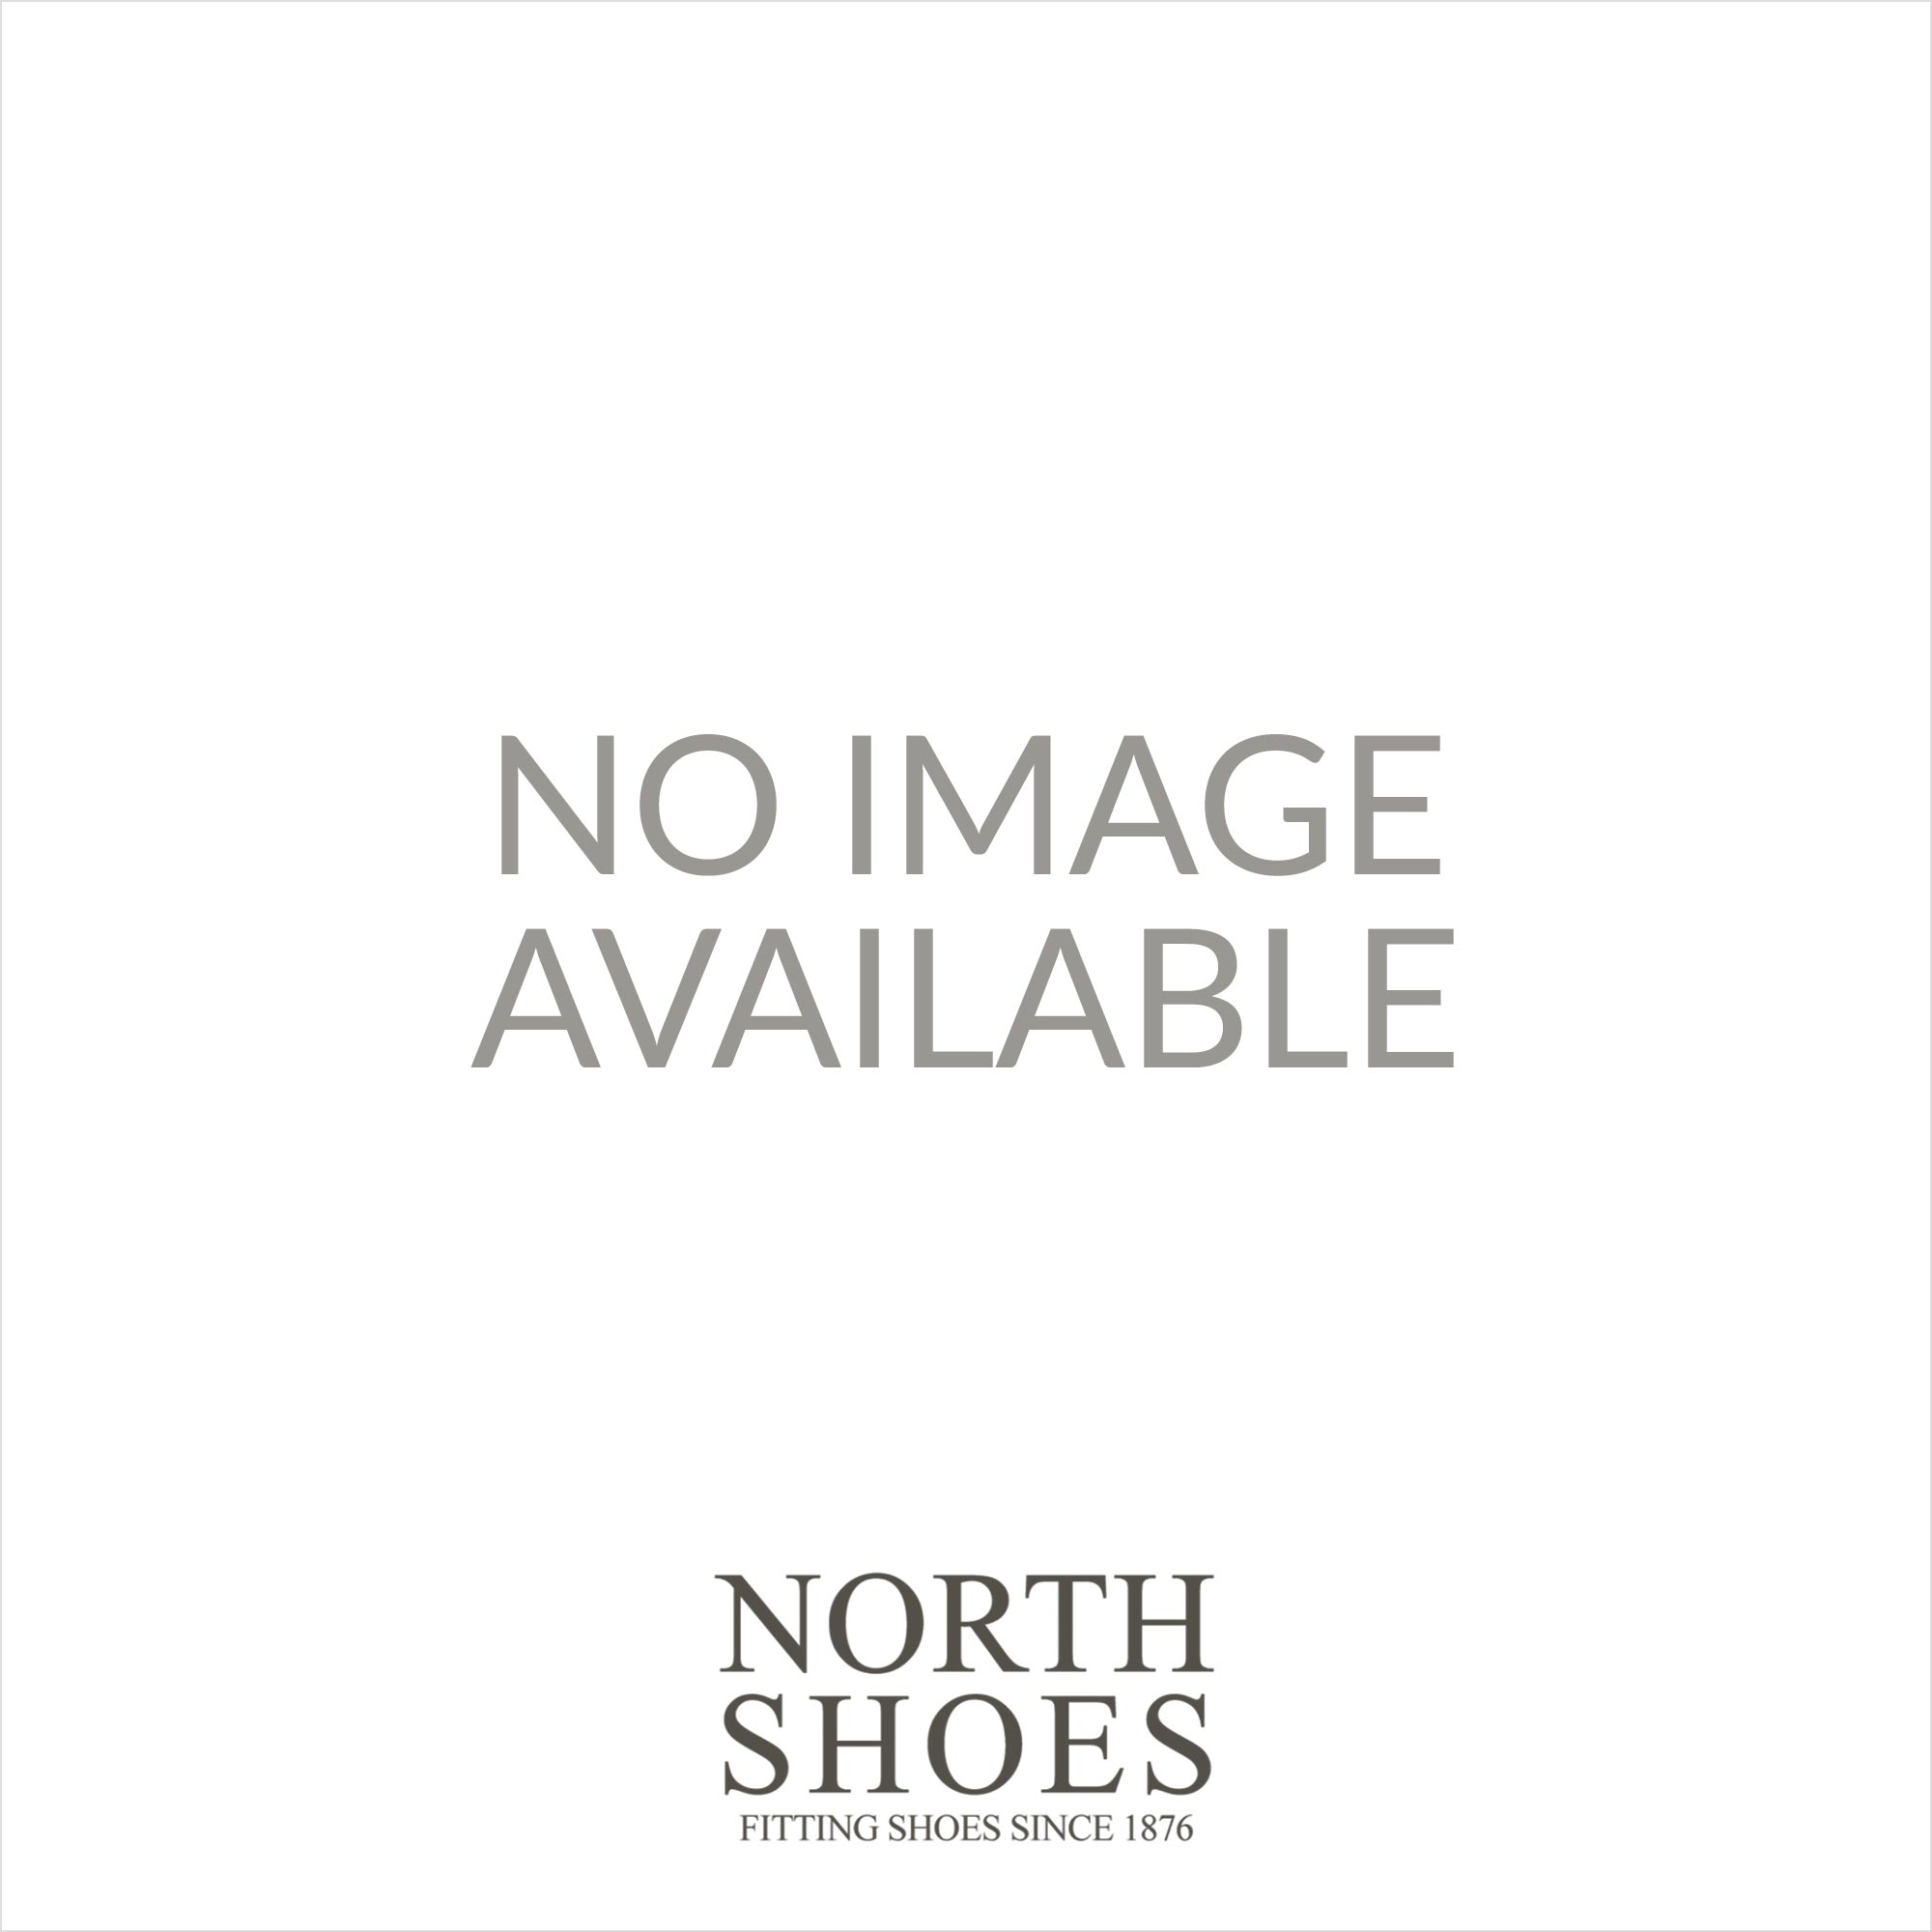 3f652239699 Clarks Darcy Charm Coral Patent Leather Girls Strappy Summer Sandal - Clarks  from North Shoes UK